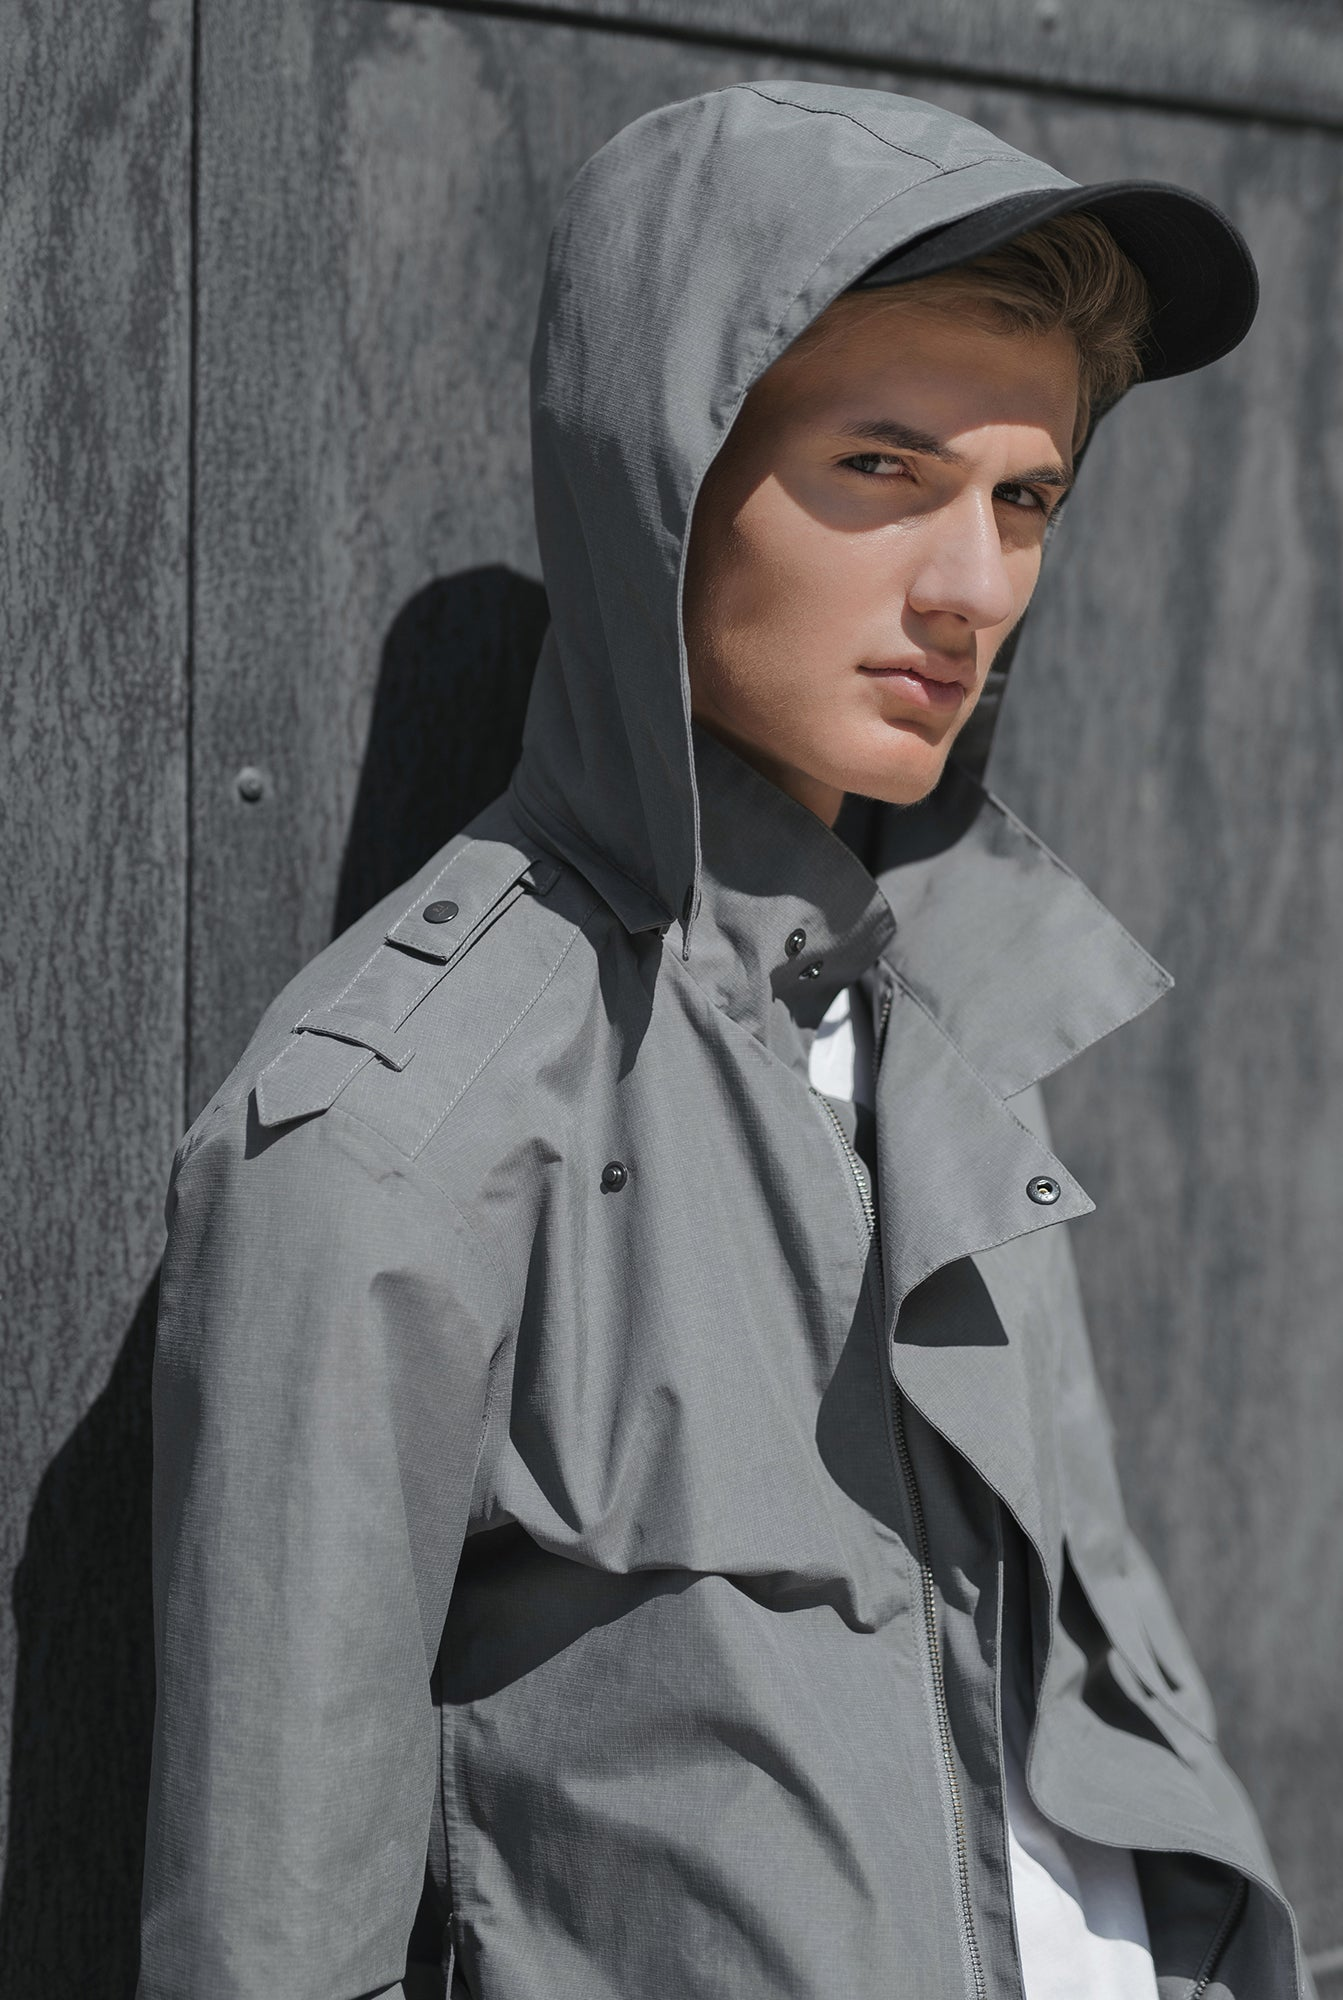 ZIPPER TRENCH COAT - grey raincoat for men